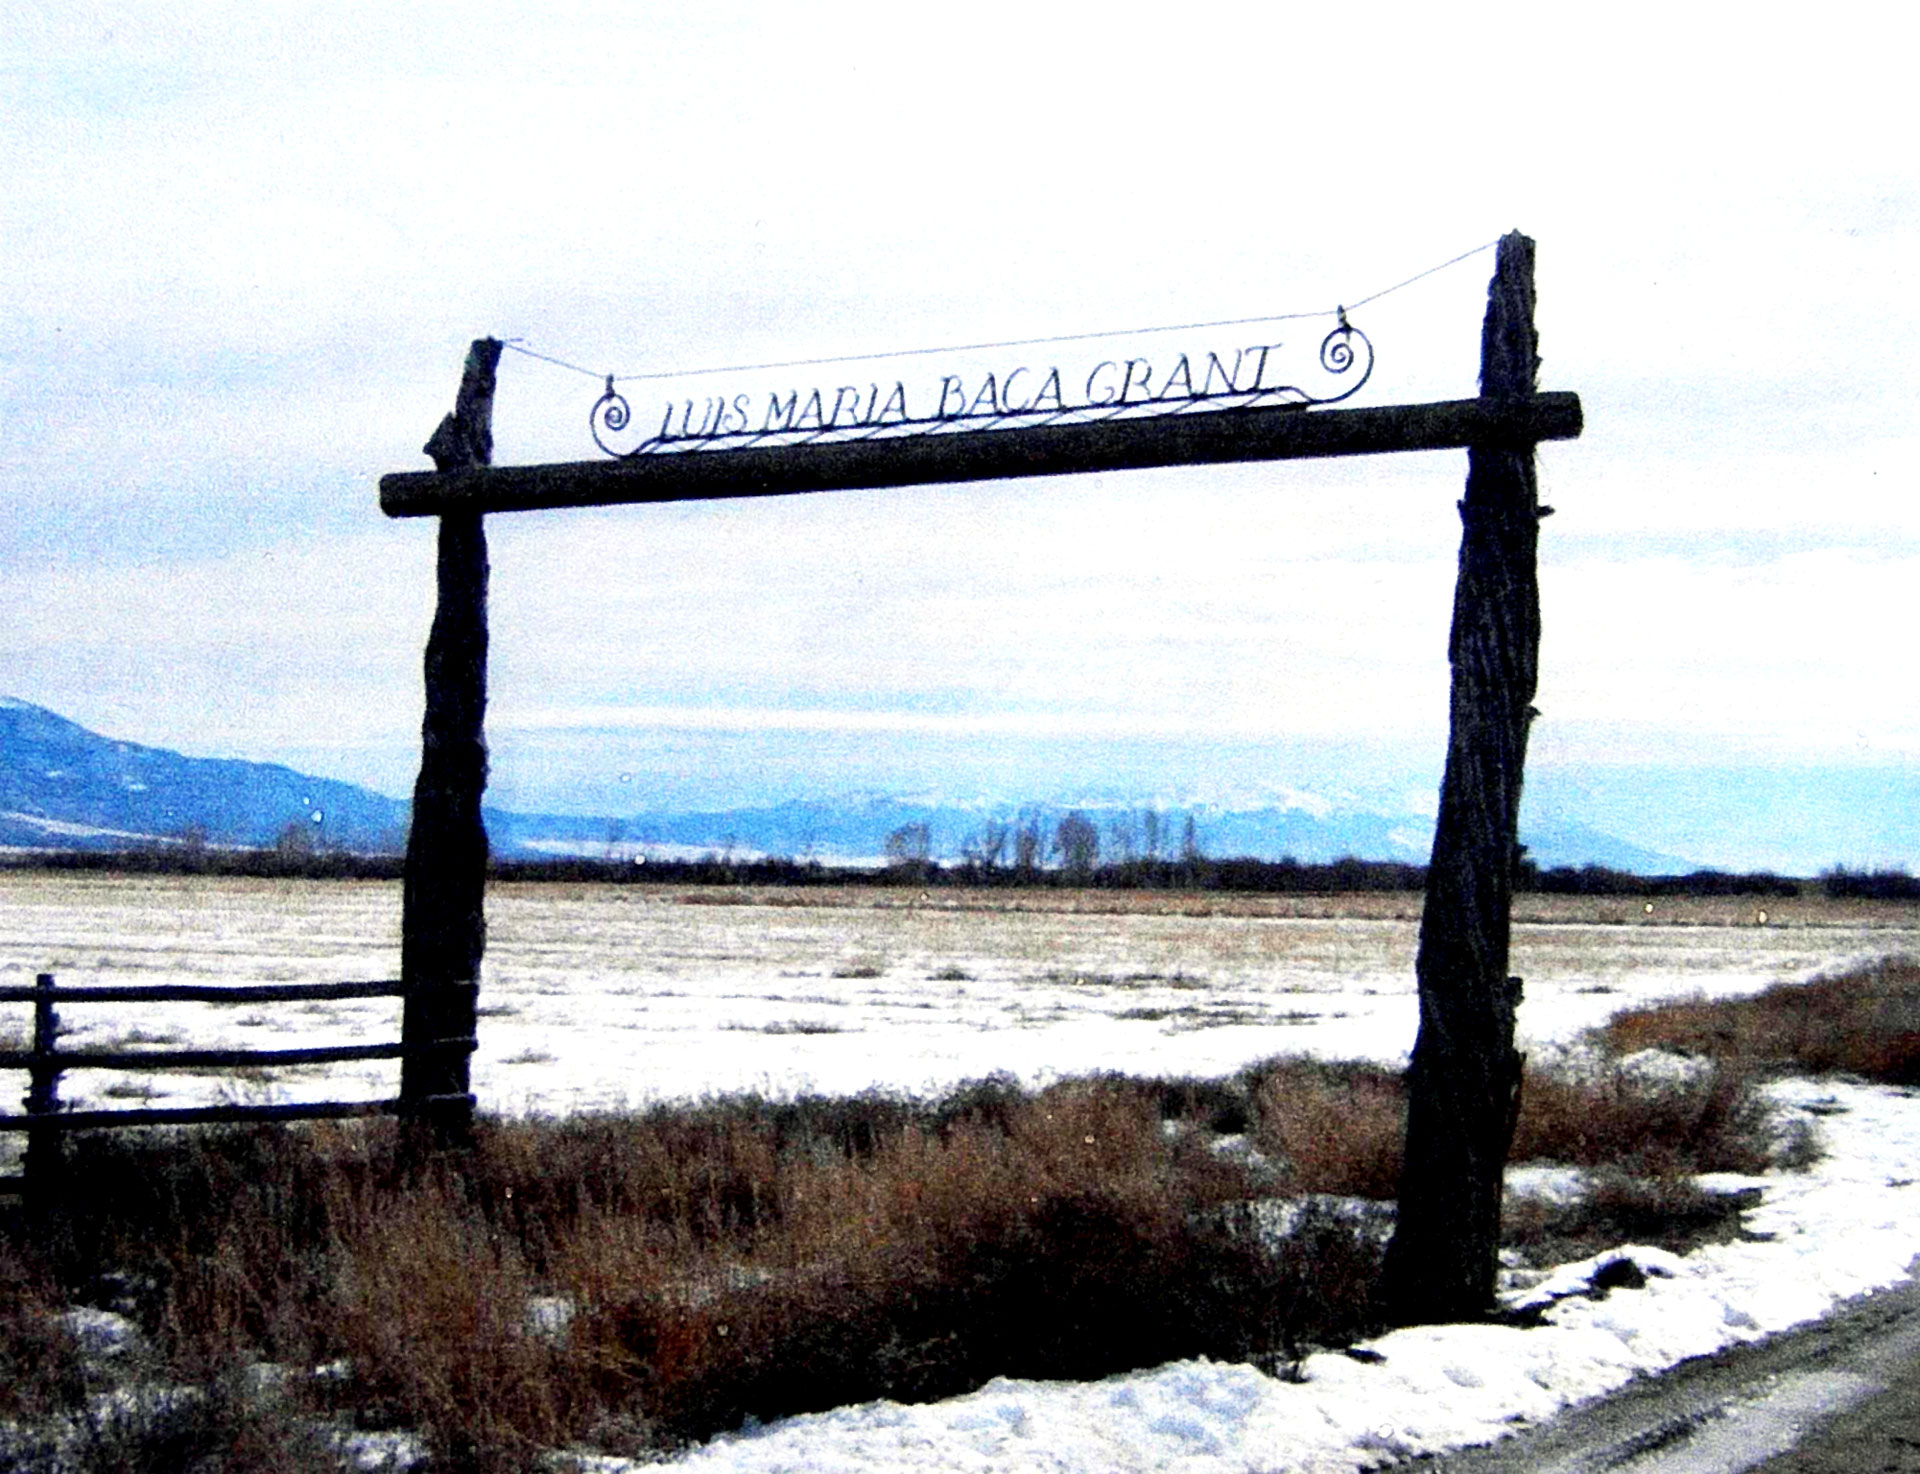 Figure 1. Gateway to the new Baca National Wildlife Refuge